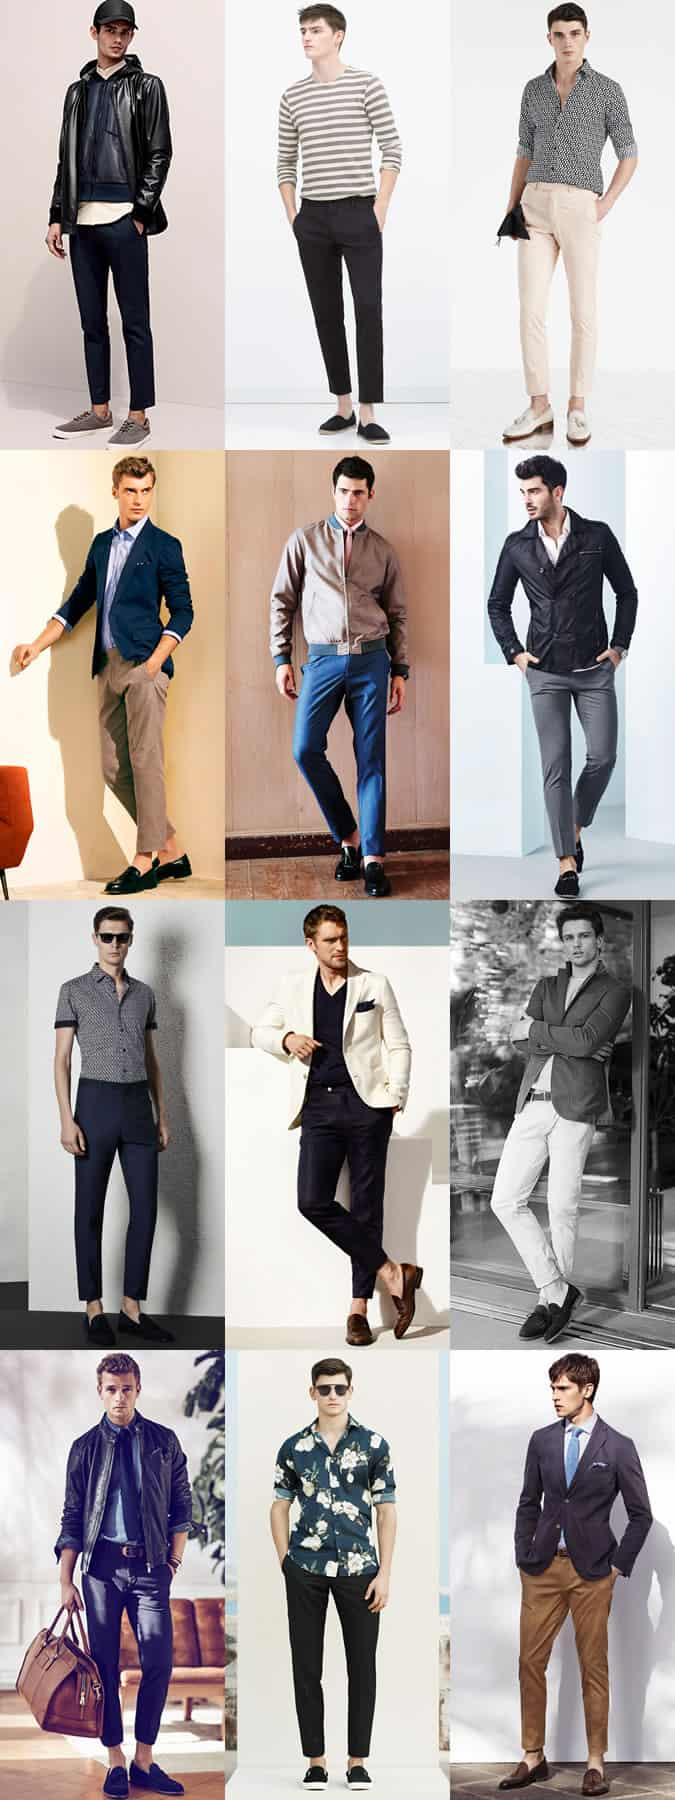 Men's Cropped Trousers - Sockless Outfit Inspiration Lookbook